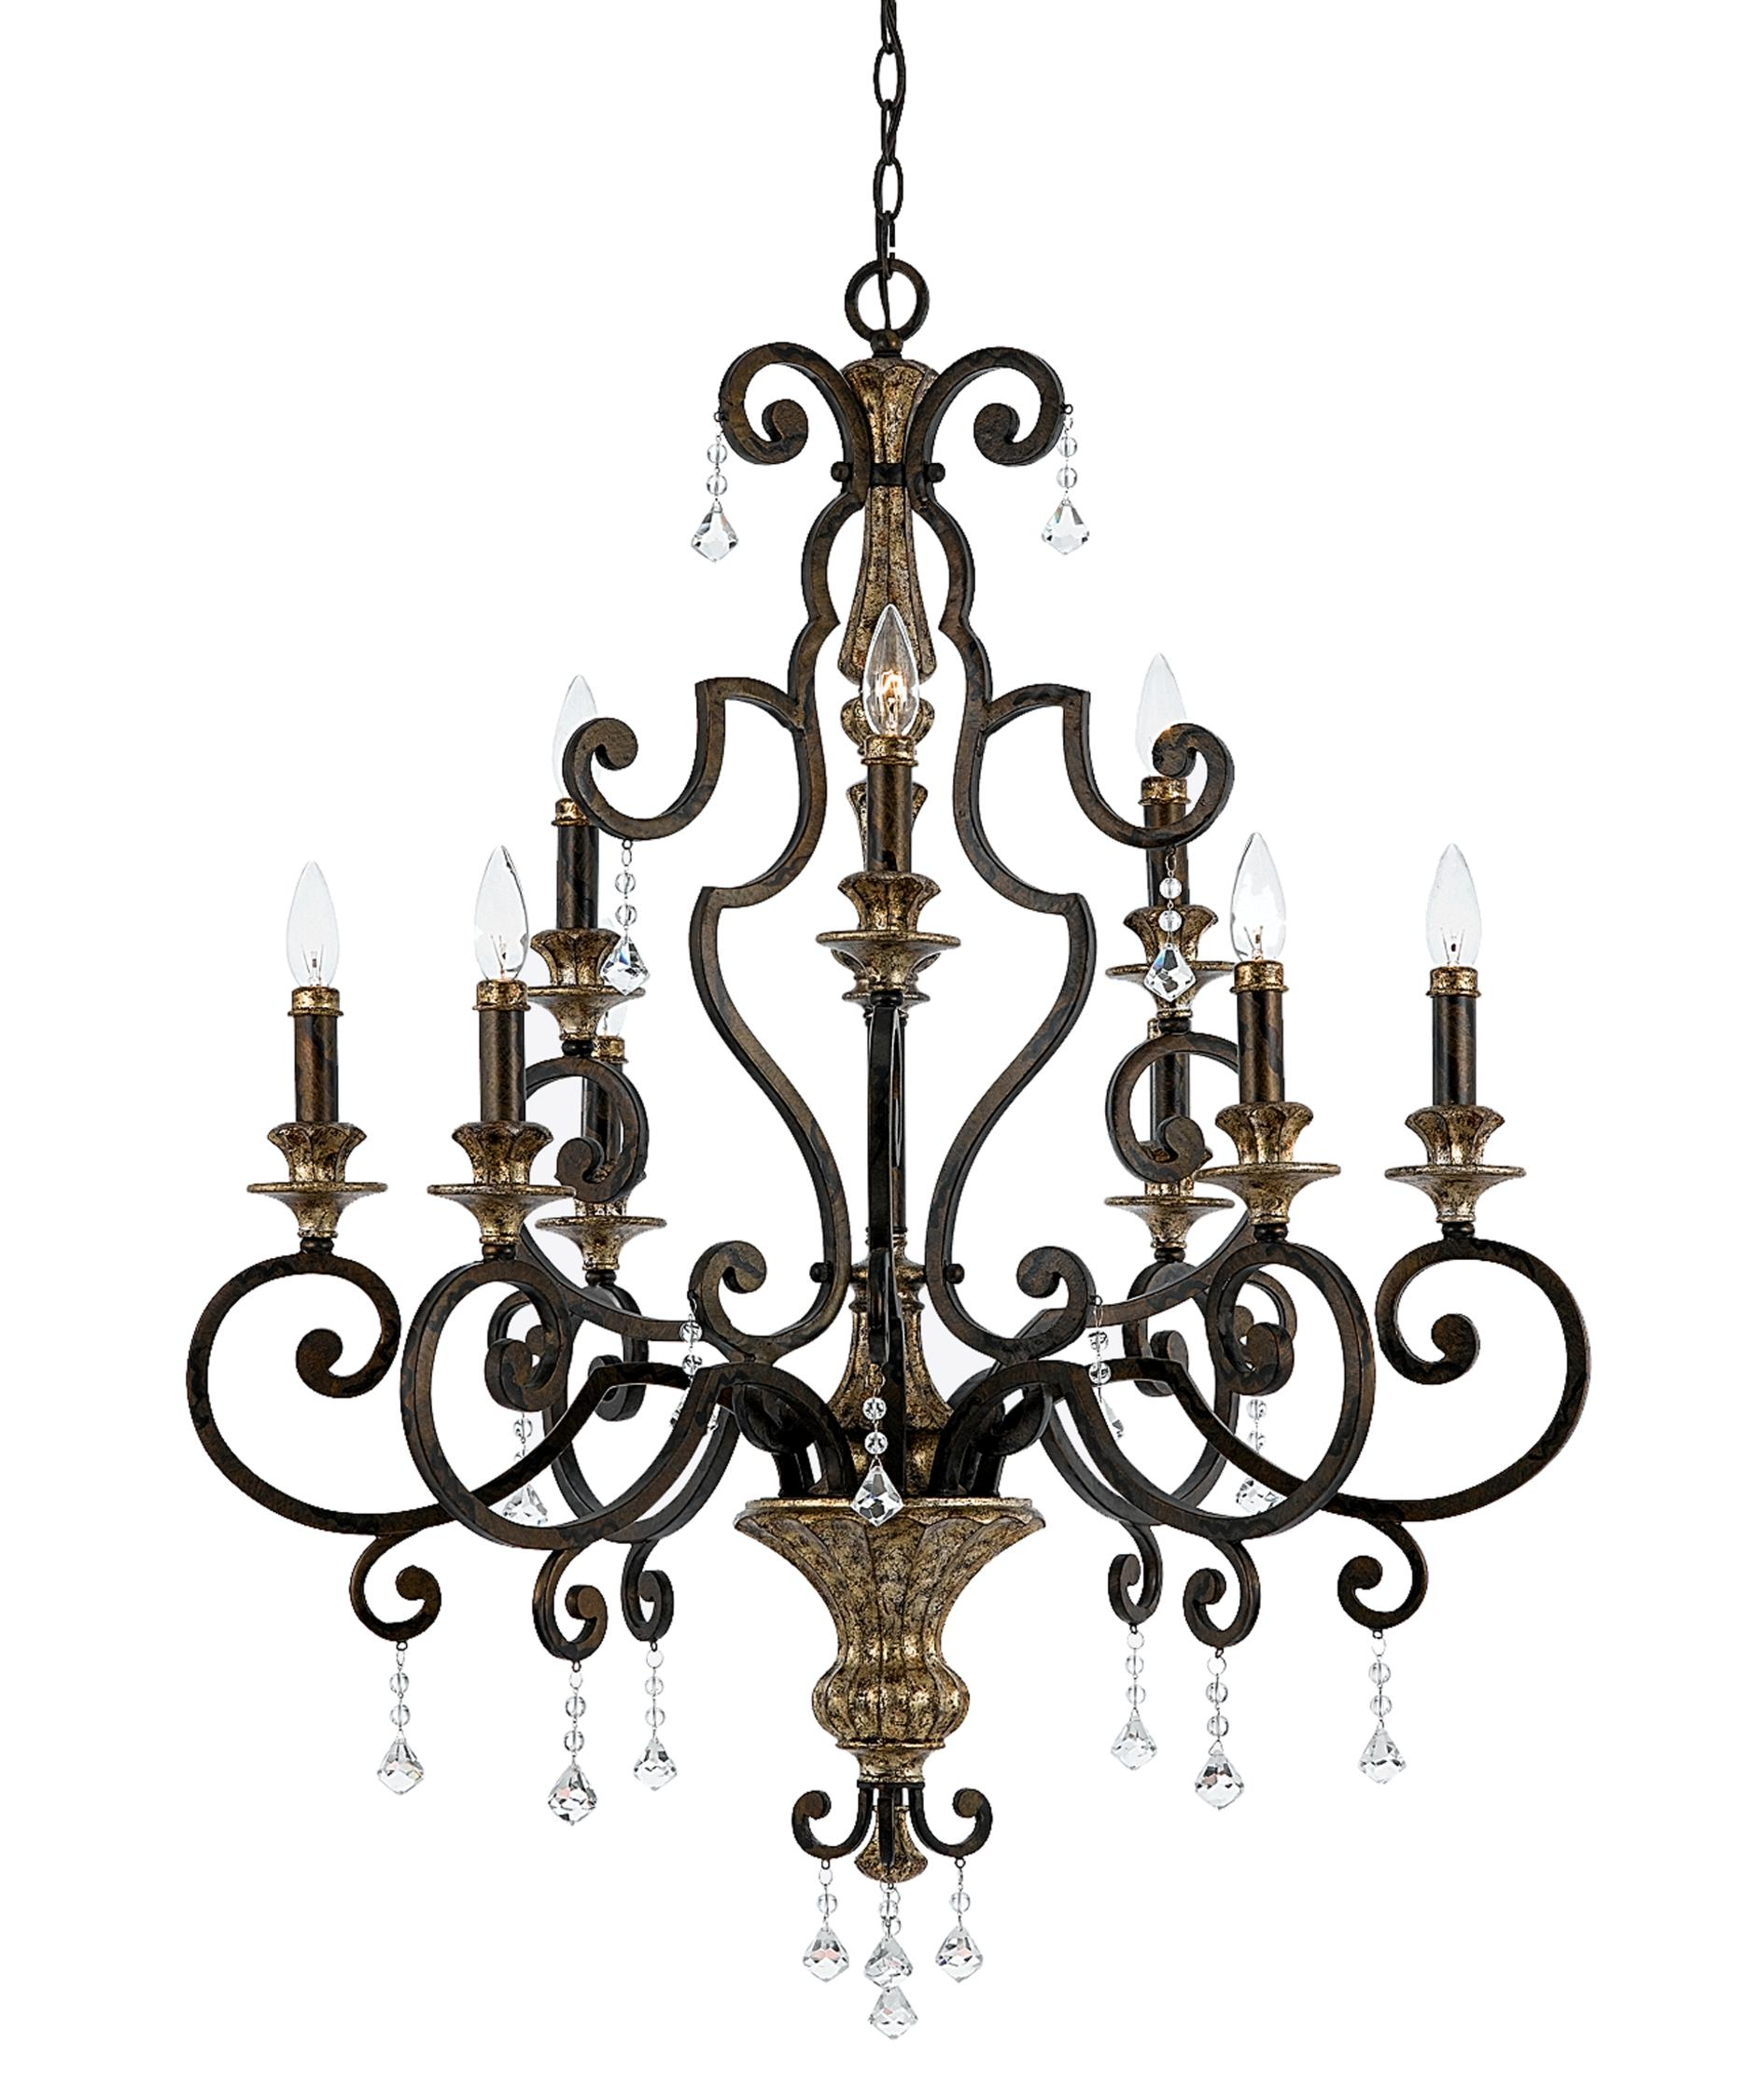 Quoizel Marquette 32 Inch Wide 9 Light Chandelier – Quoizel Chandelier